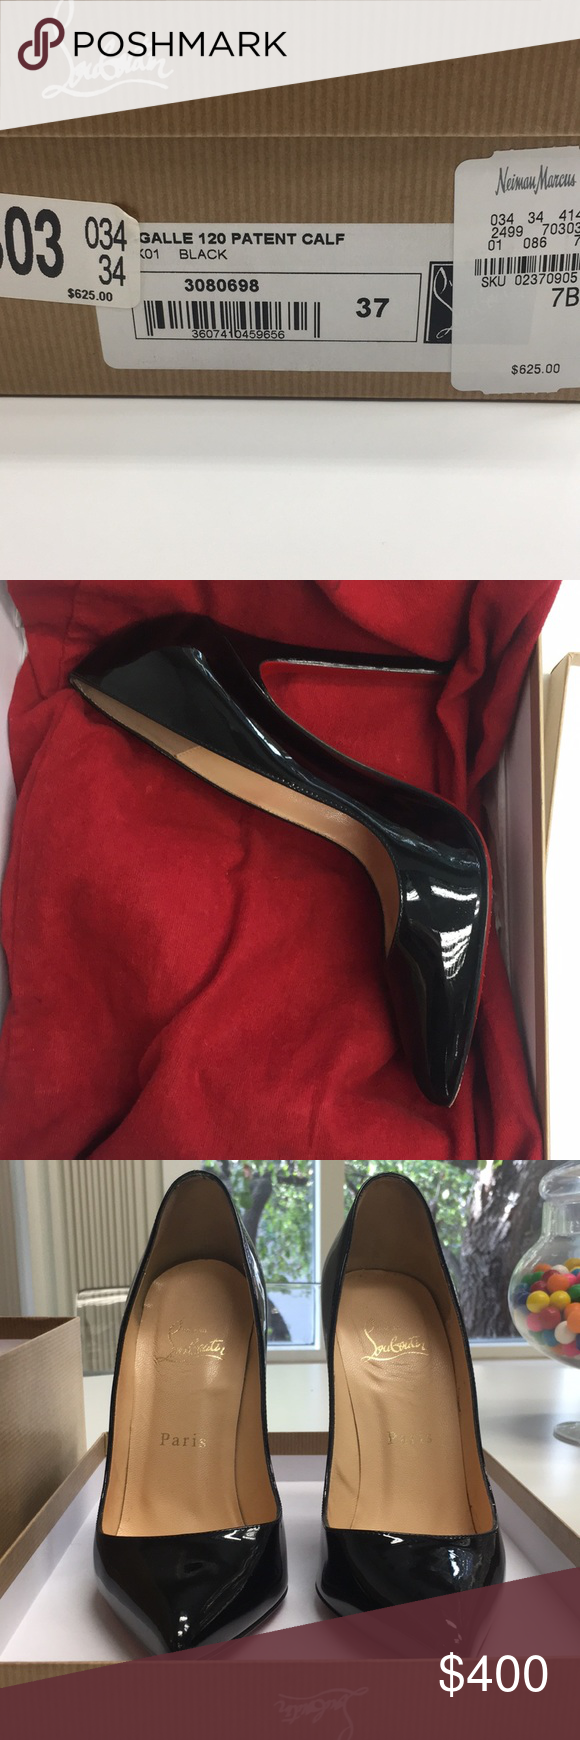 f5accb1de9f Christian Louboutin black patent stiletto Size 7  Christian Louboutin black  parent leather Pigalle Follies pumps from Neiman Marcus. Only worn 3 times  over ...